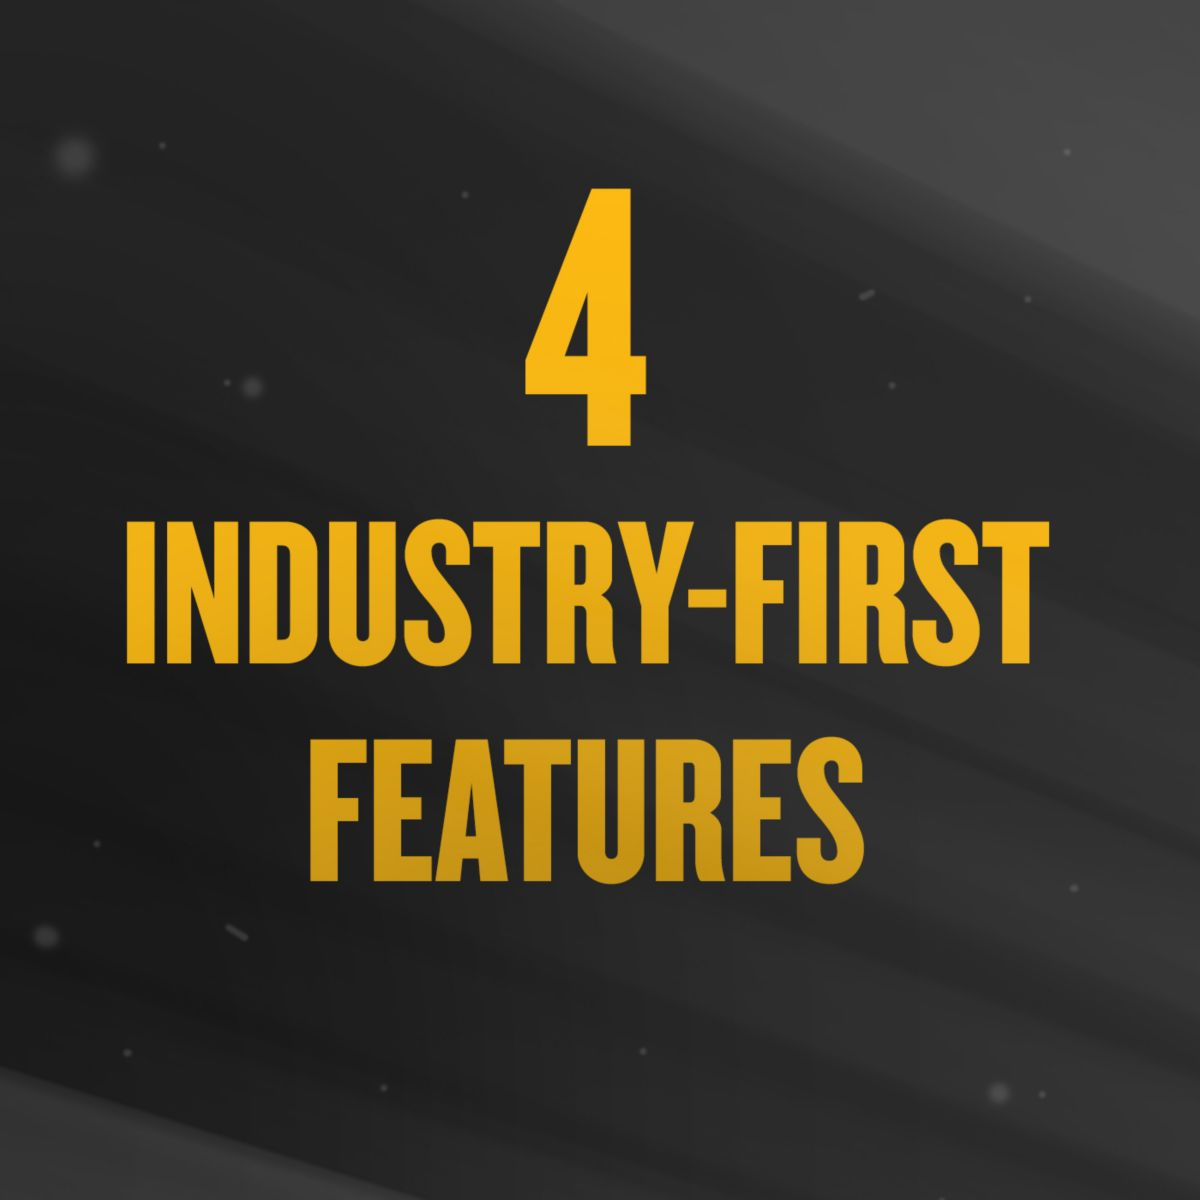 4 Industry-First Features